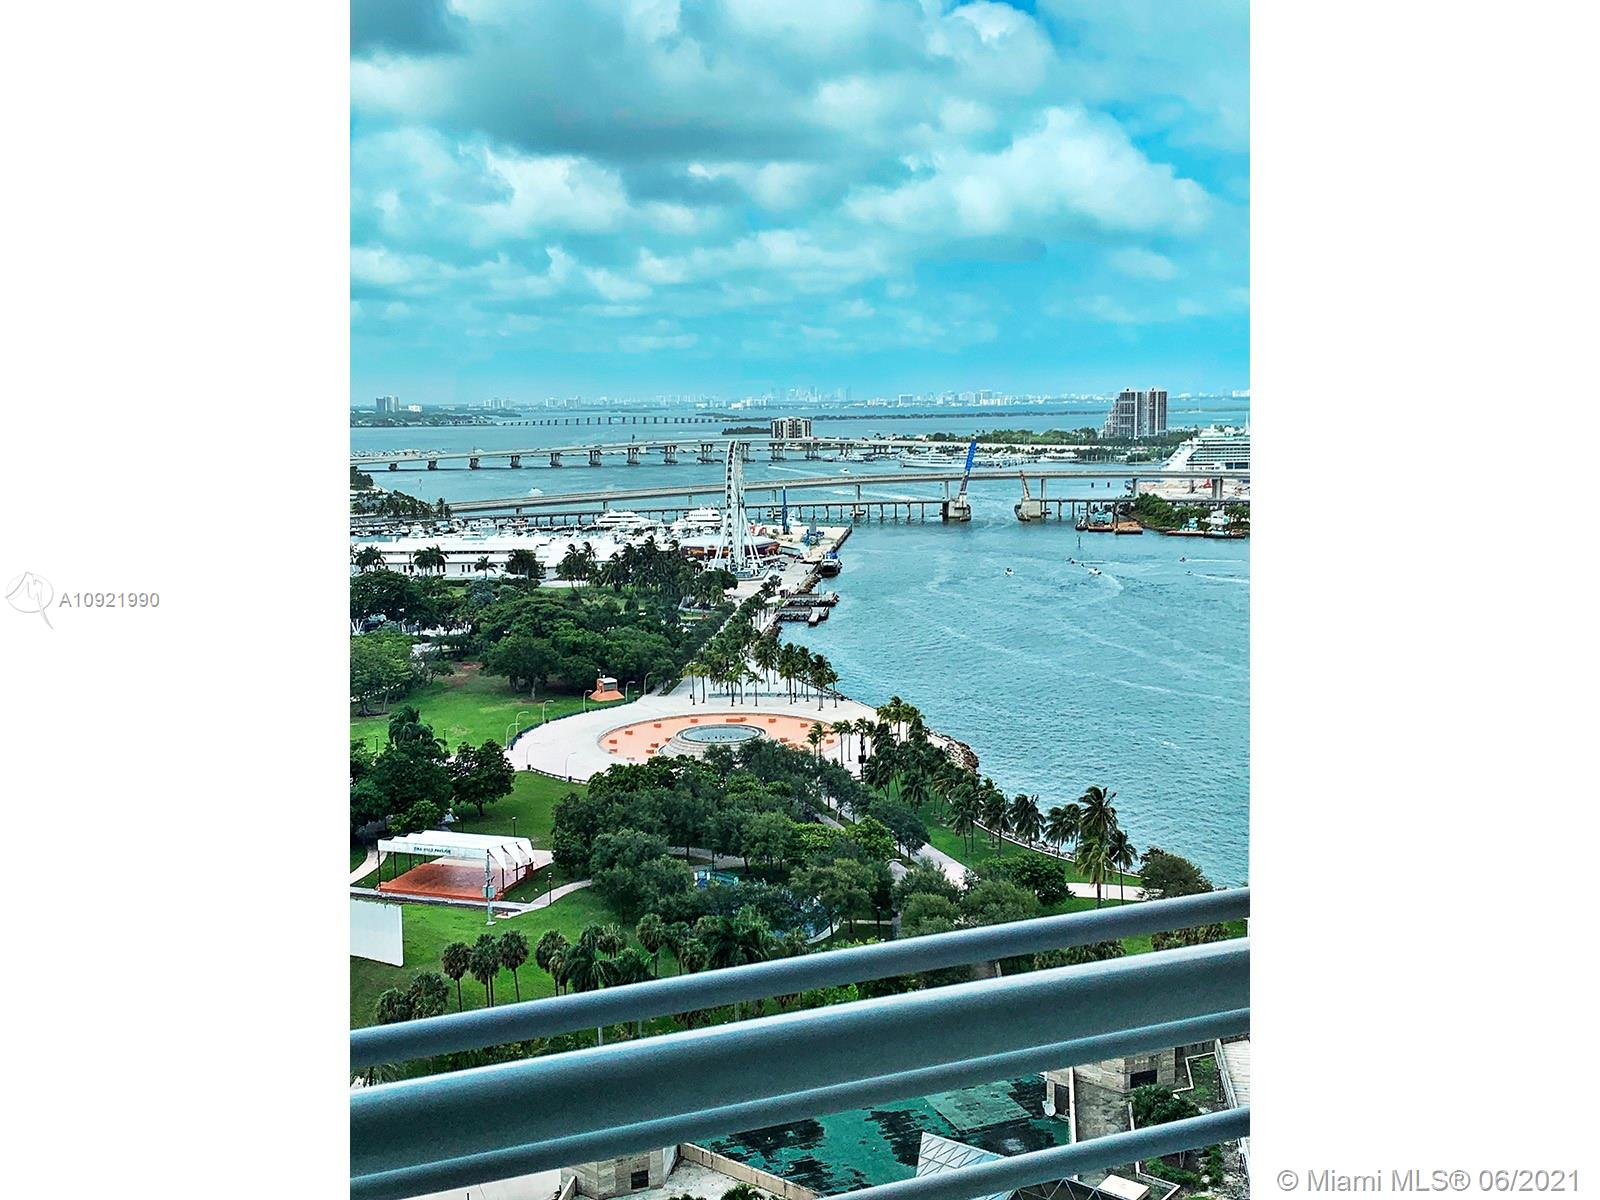 Priced to sell. Beautiful 1 bed 1 bath condo at The One Miami. Experience Downtown living with a fabulous view of Biscayne Bay and Brickell skyline from the 26th Floor. HOA dues include basic cable TV, internet, and water. Enjoy full service of Resort Style amenities 2 gyms, 2 pools and Jacuzzi, 2 Party Rooms, Mini Market, 24-Hour Security, Concierge and Valet, Sun Deck and Spa, Fitness Center, Conference Room and Restaurants.